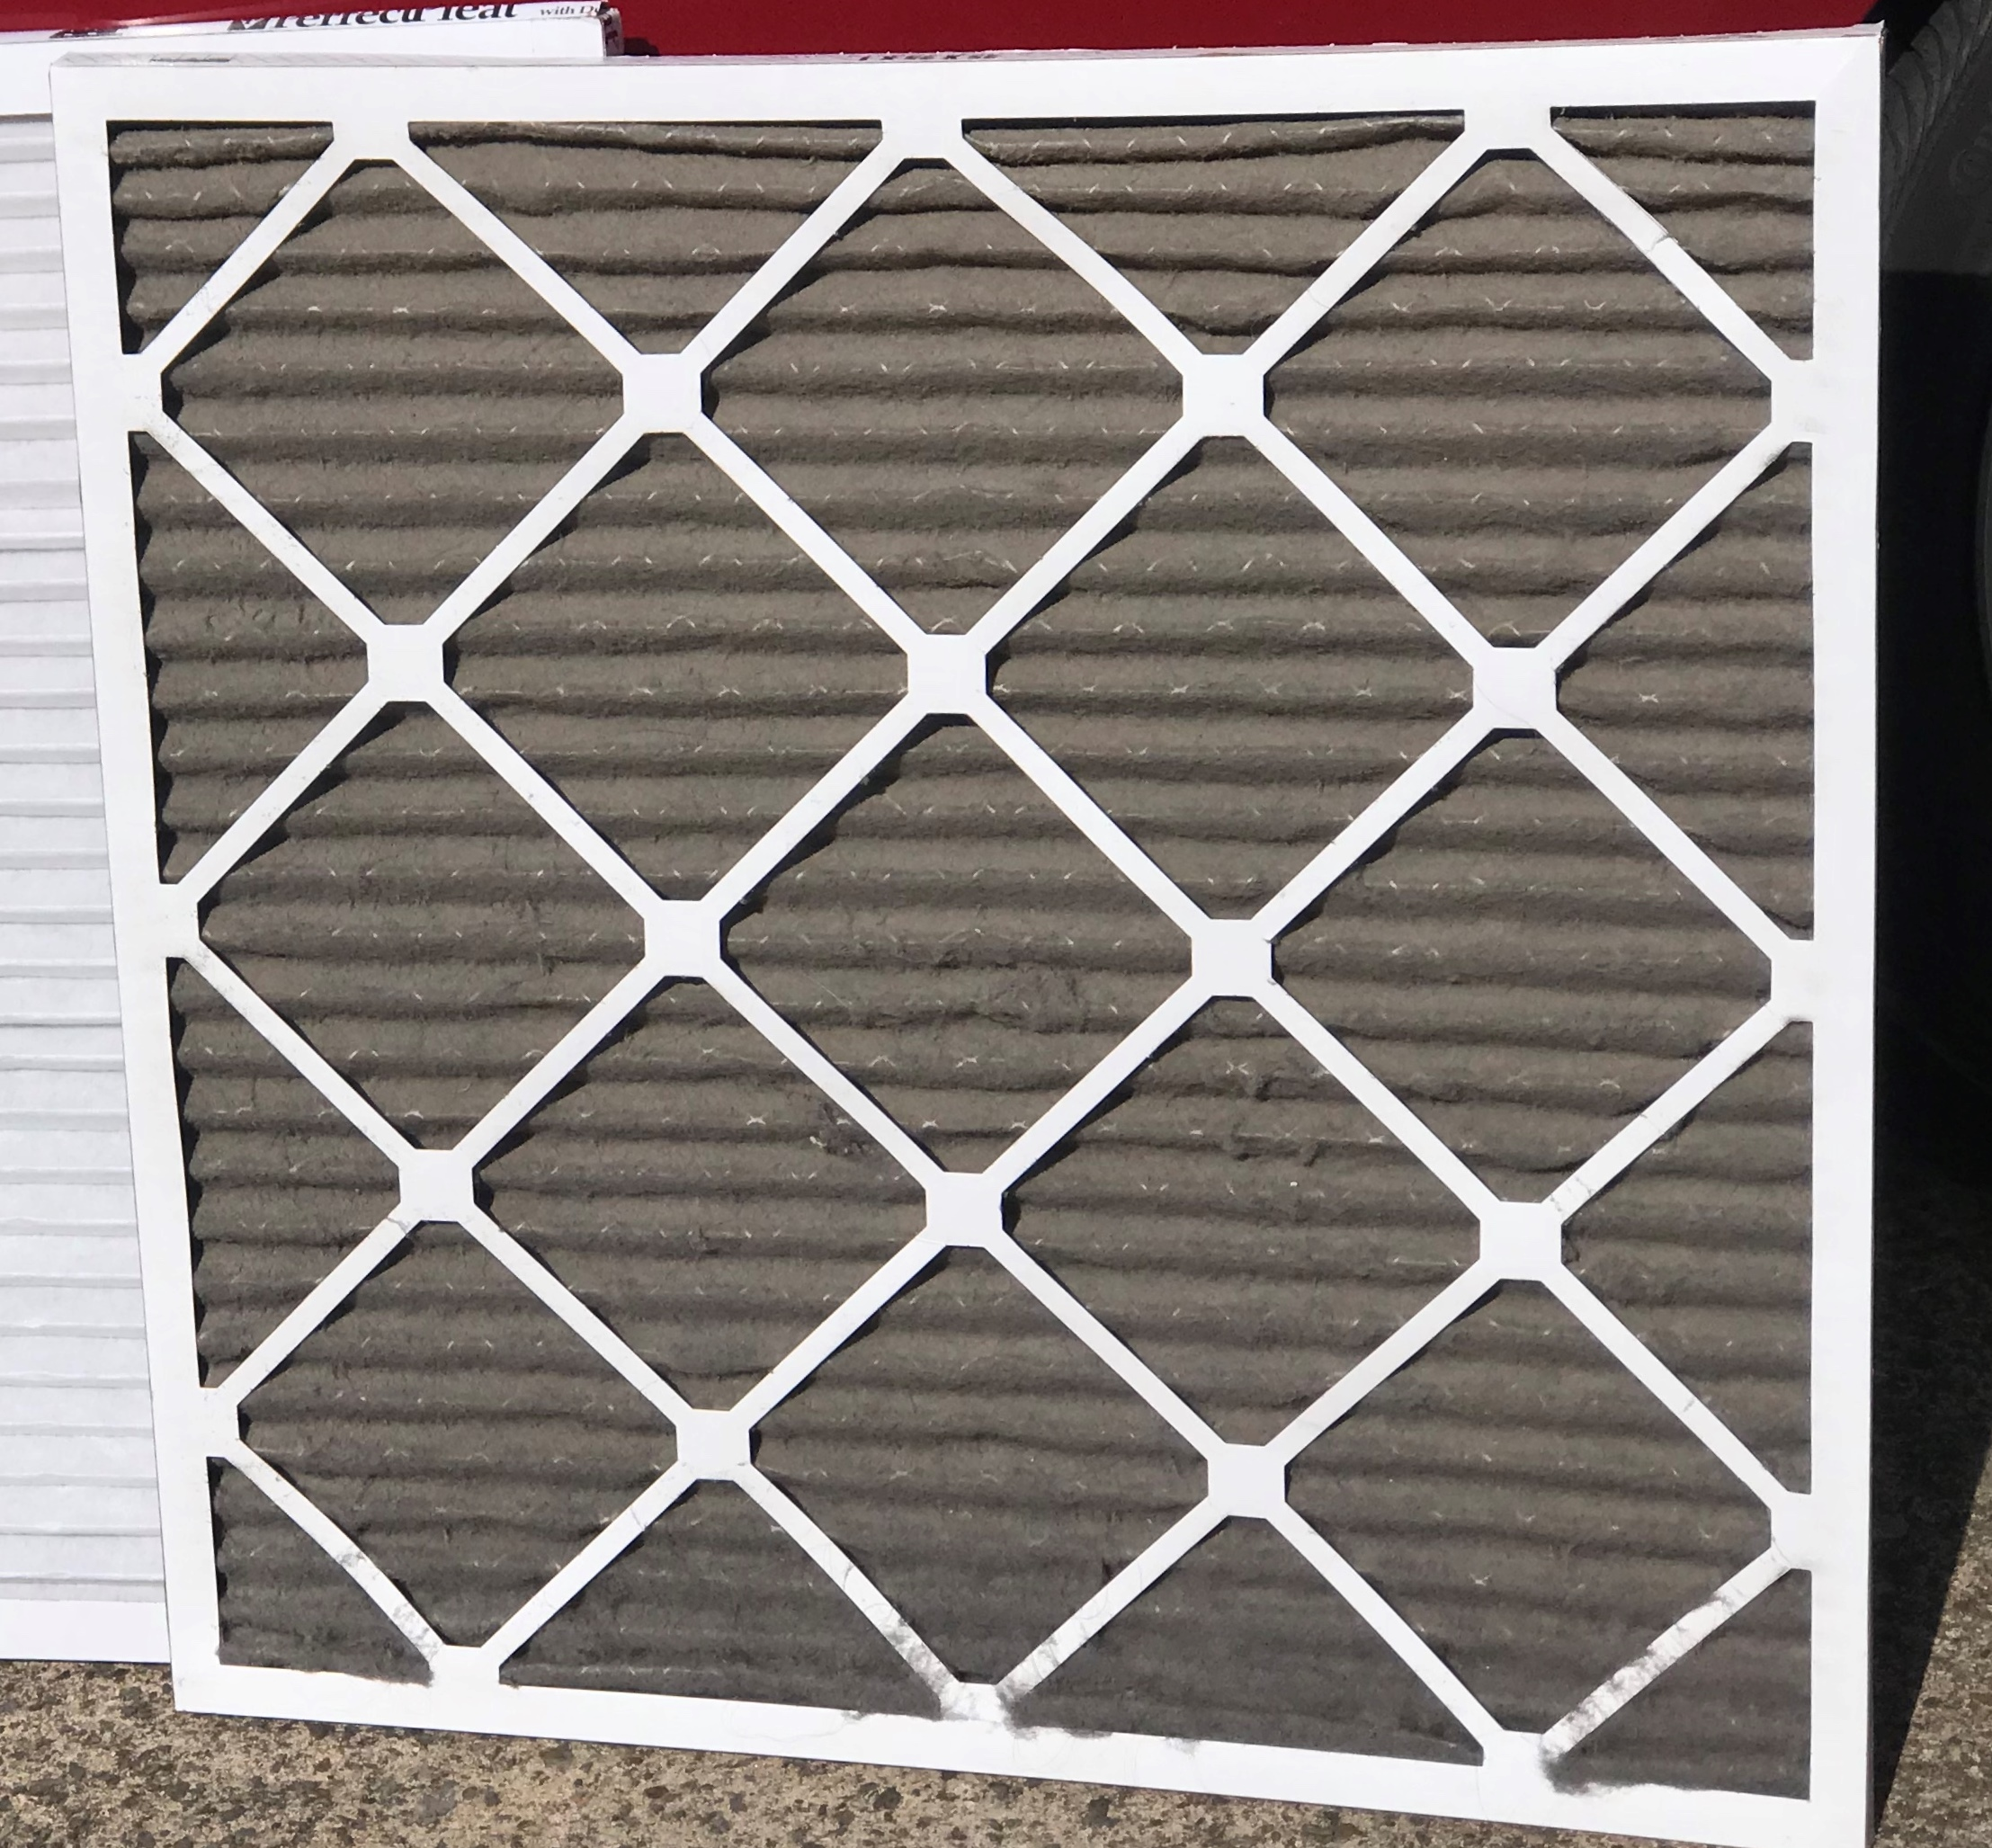 A dirty HVAC filter